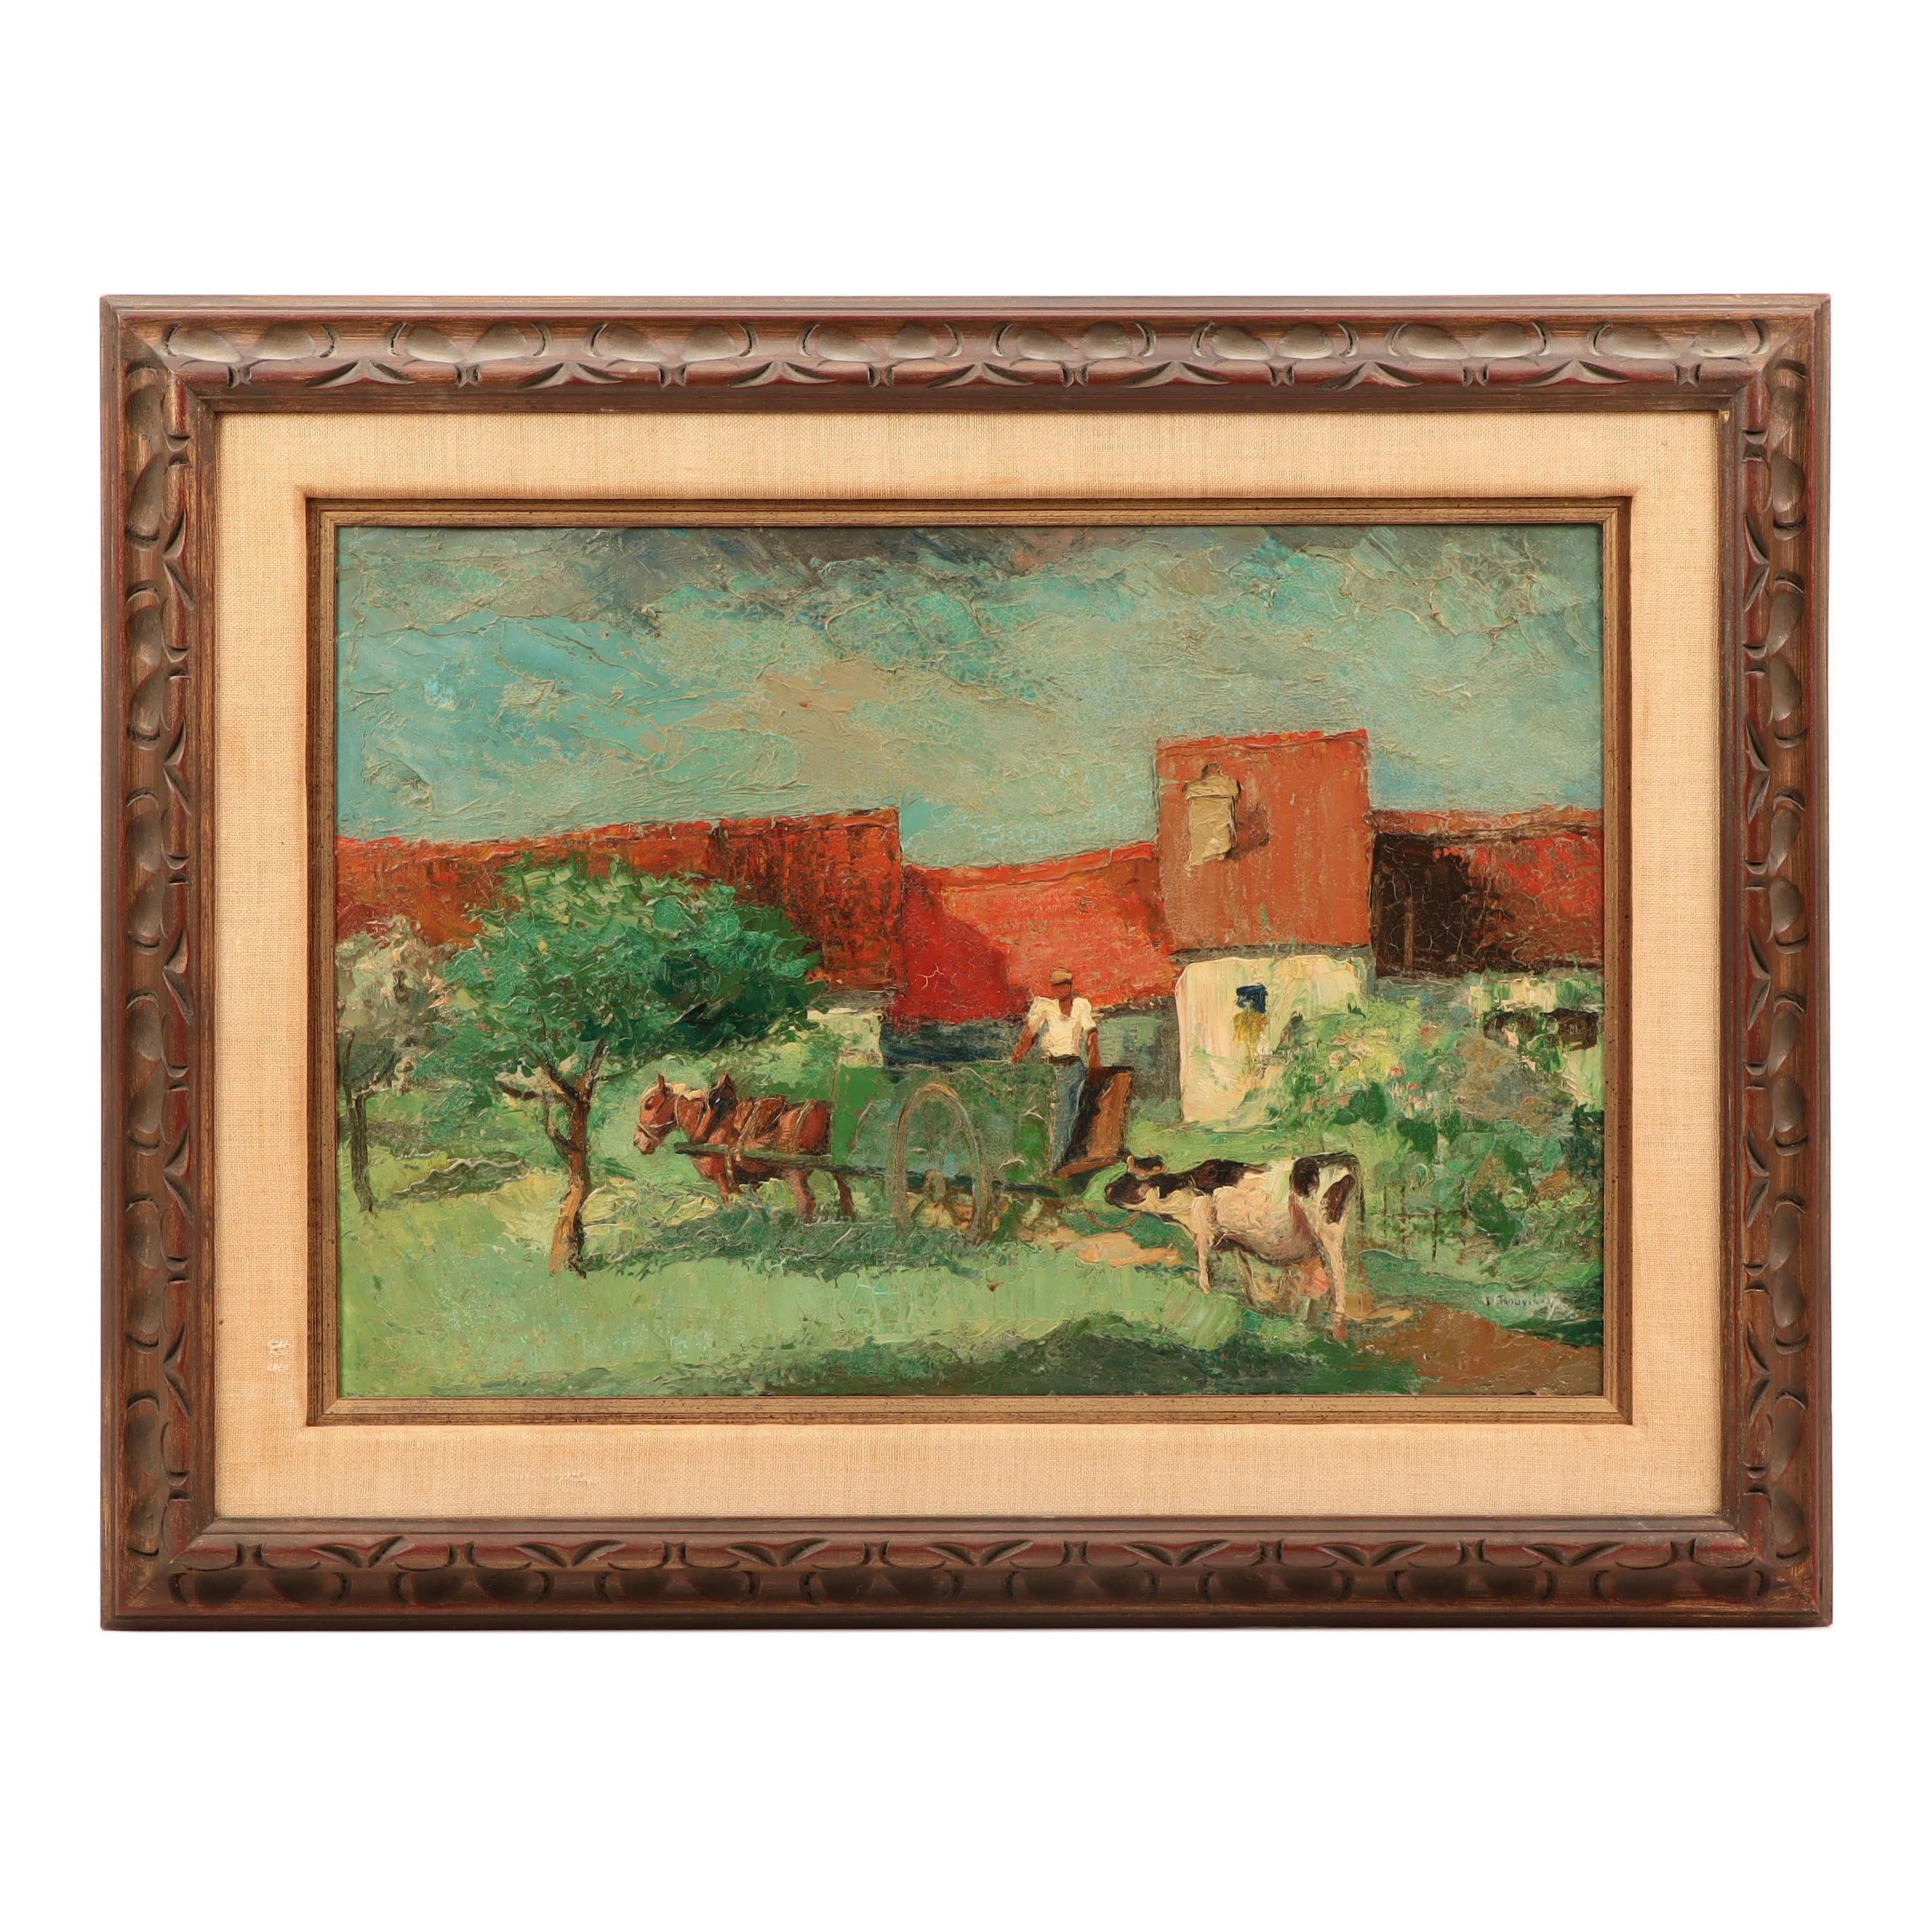 Daniel Rouviere Oil Painting of Pastoral Scene